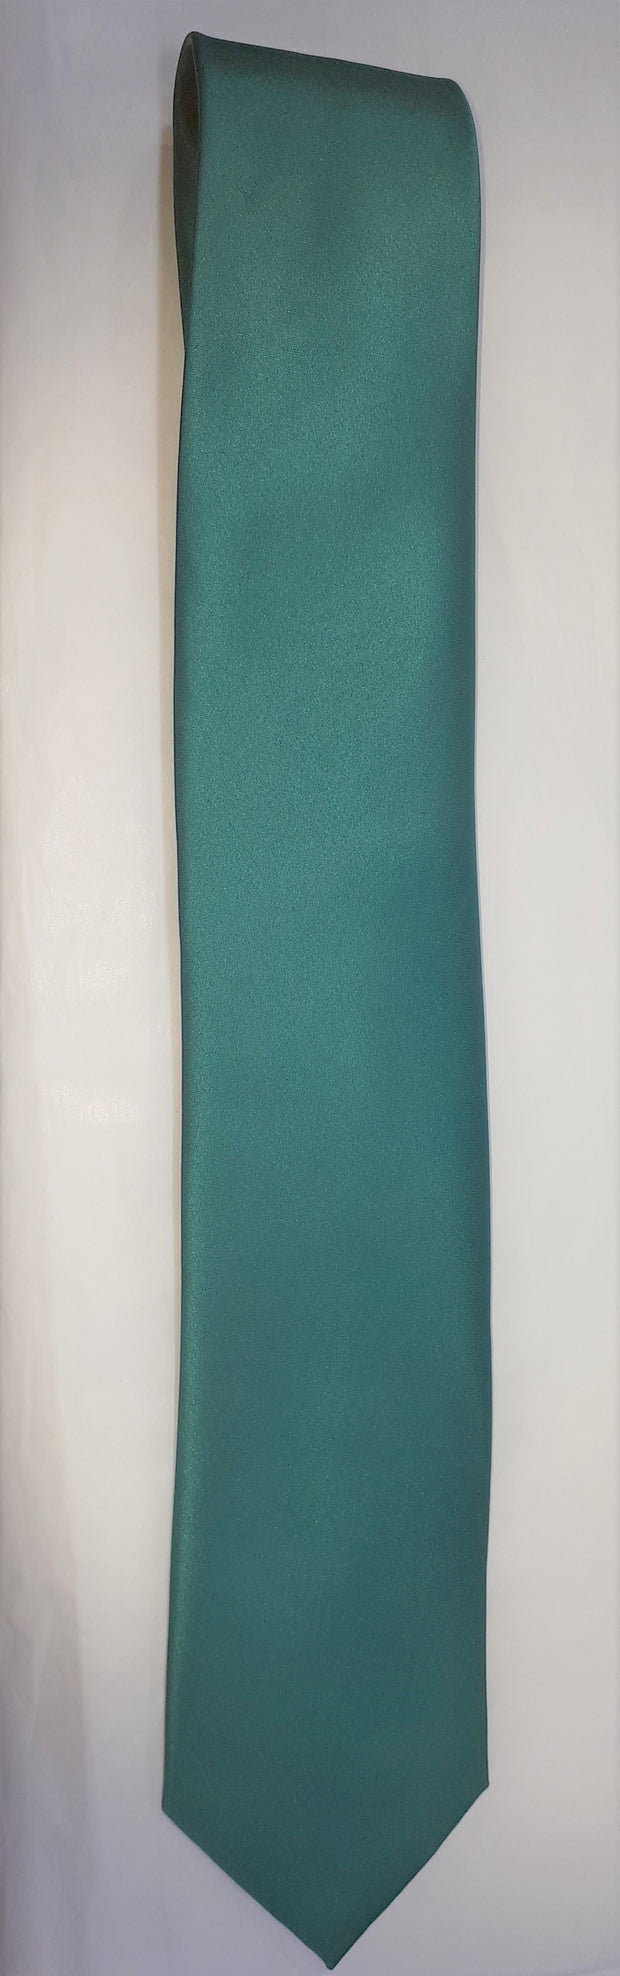 FORMAL SATIN TIE JADE